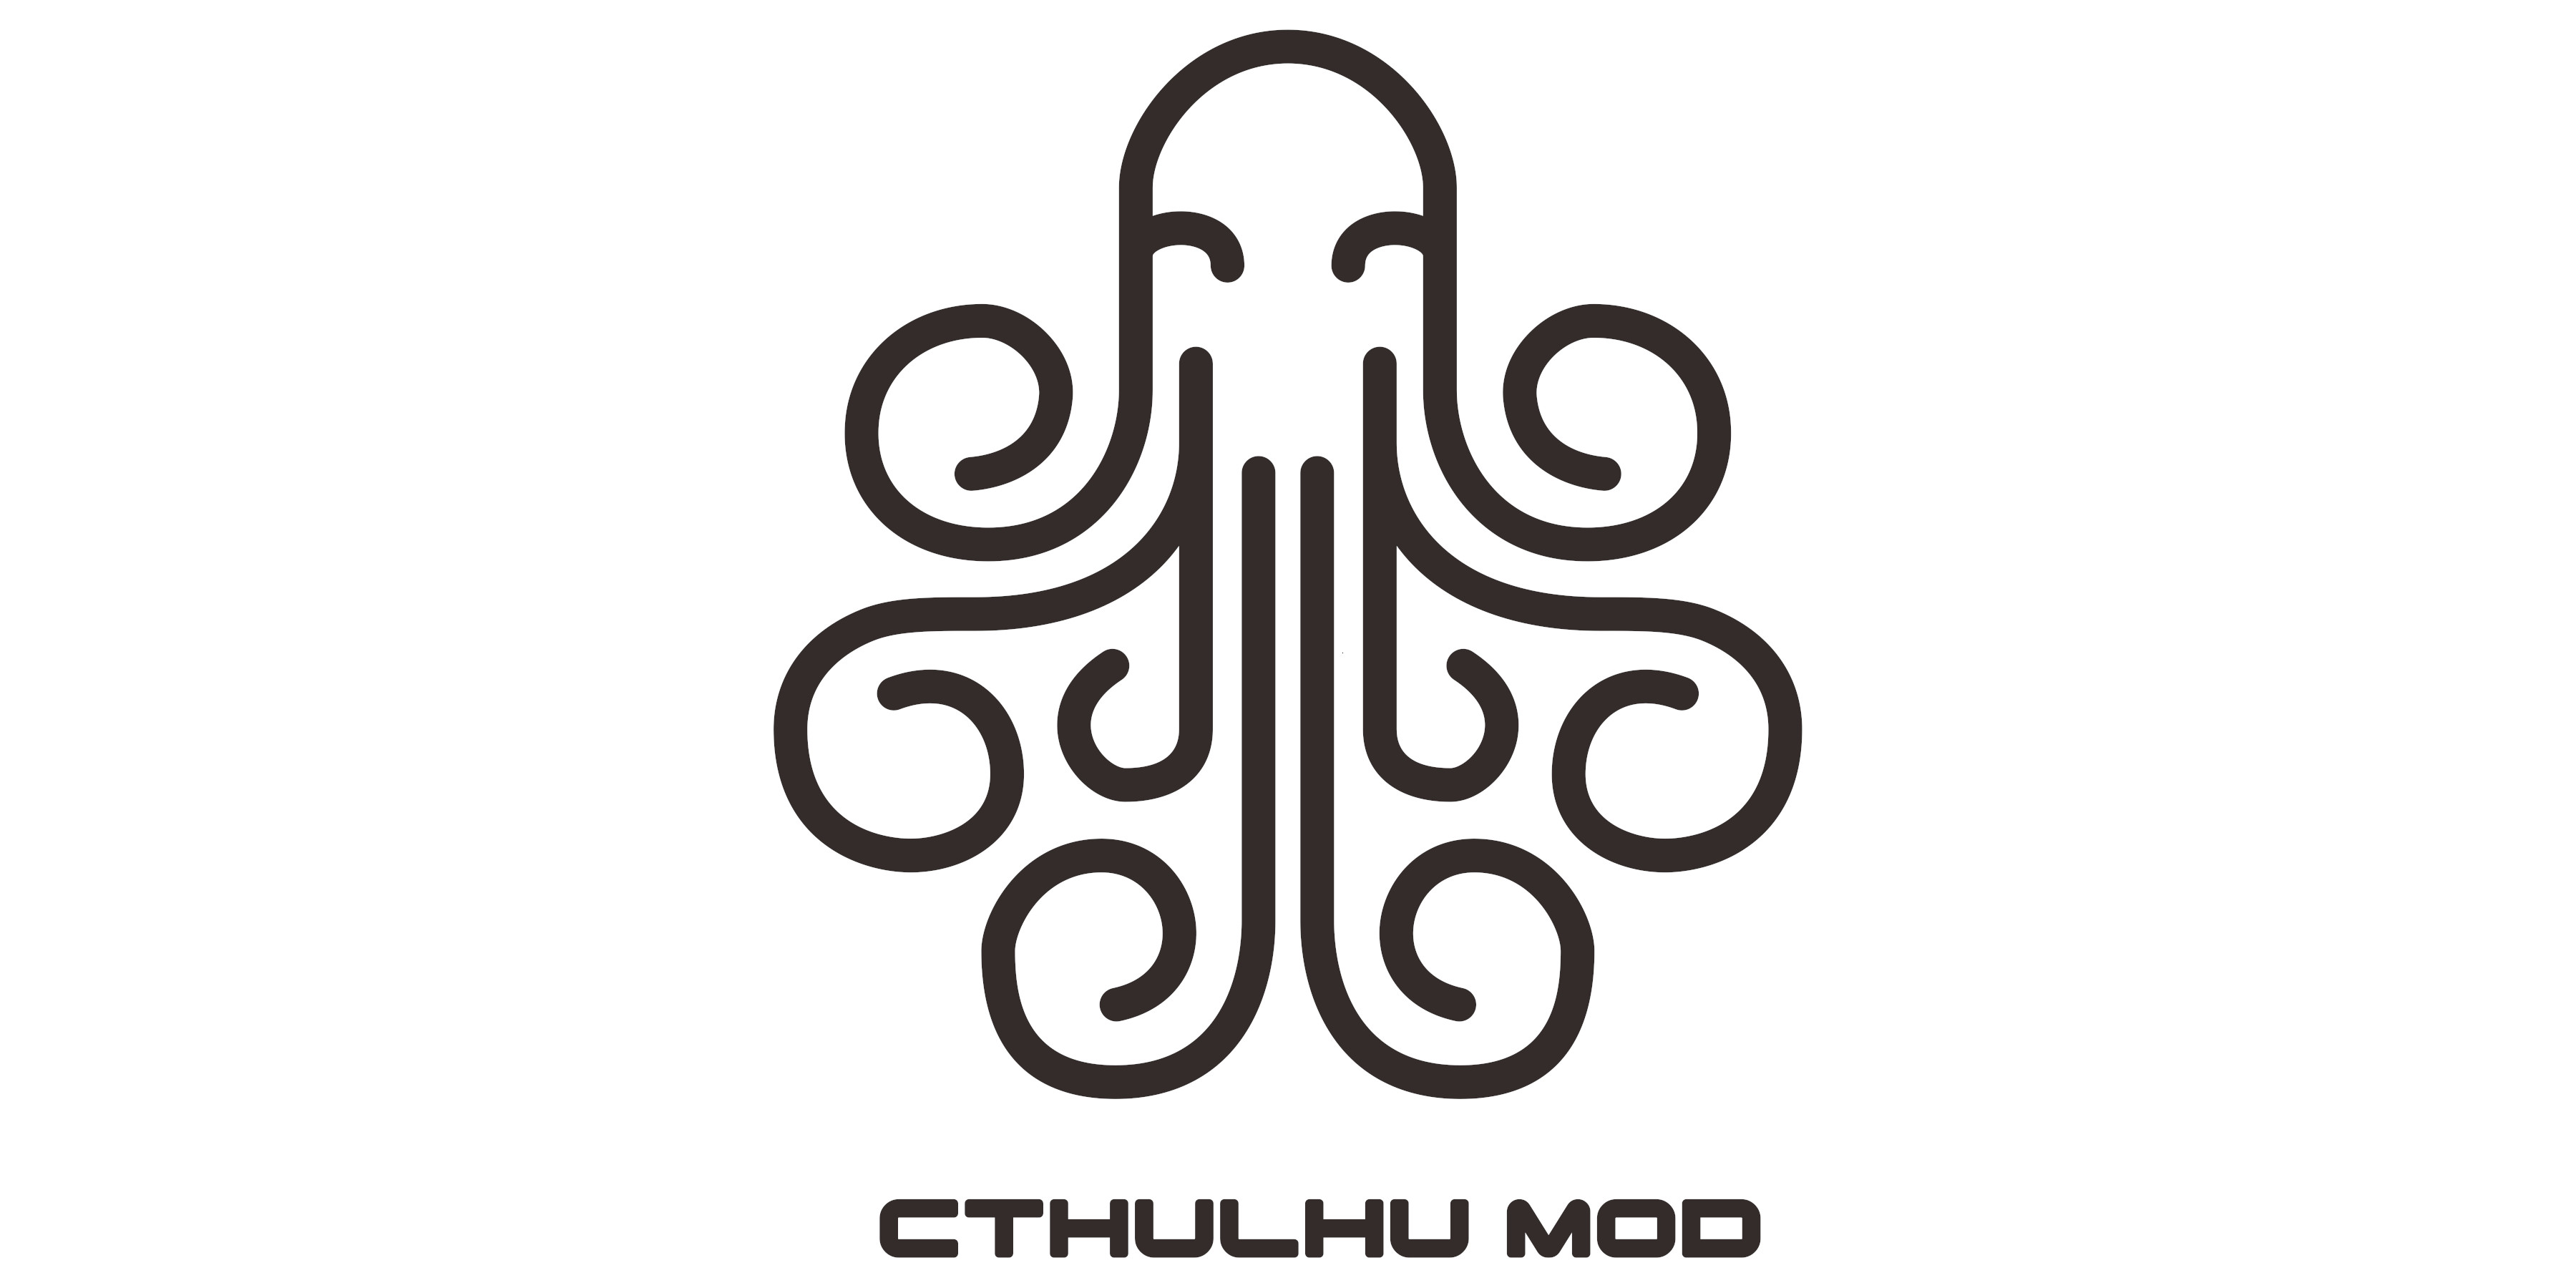 cthulhumod official